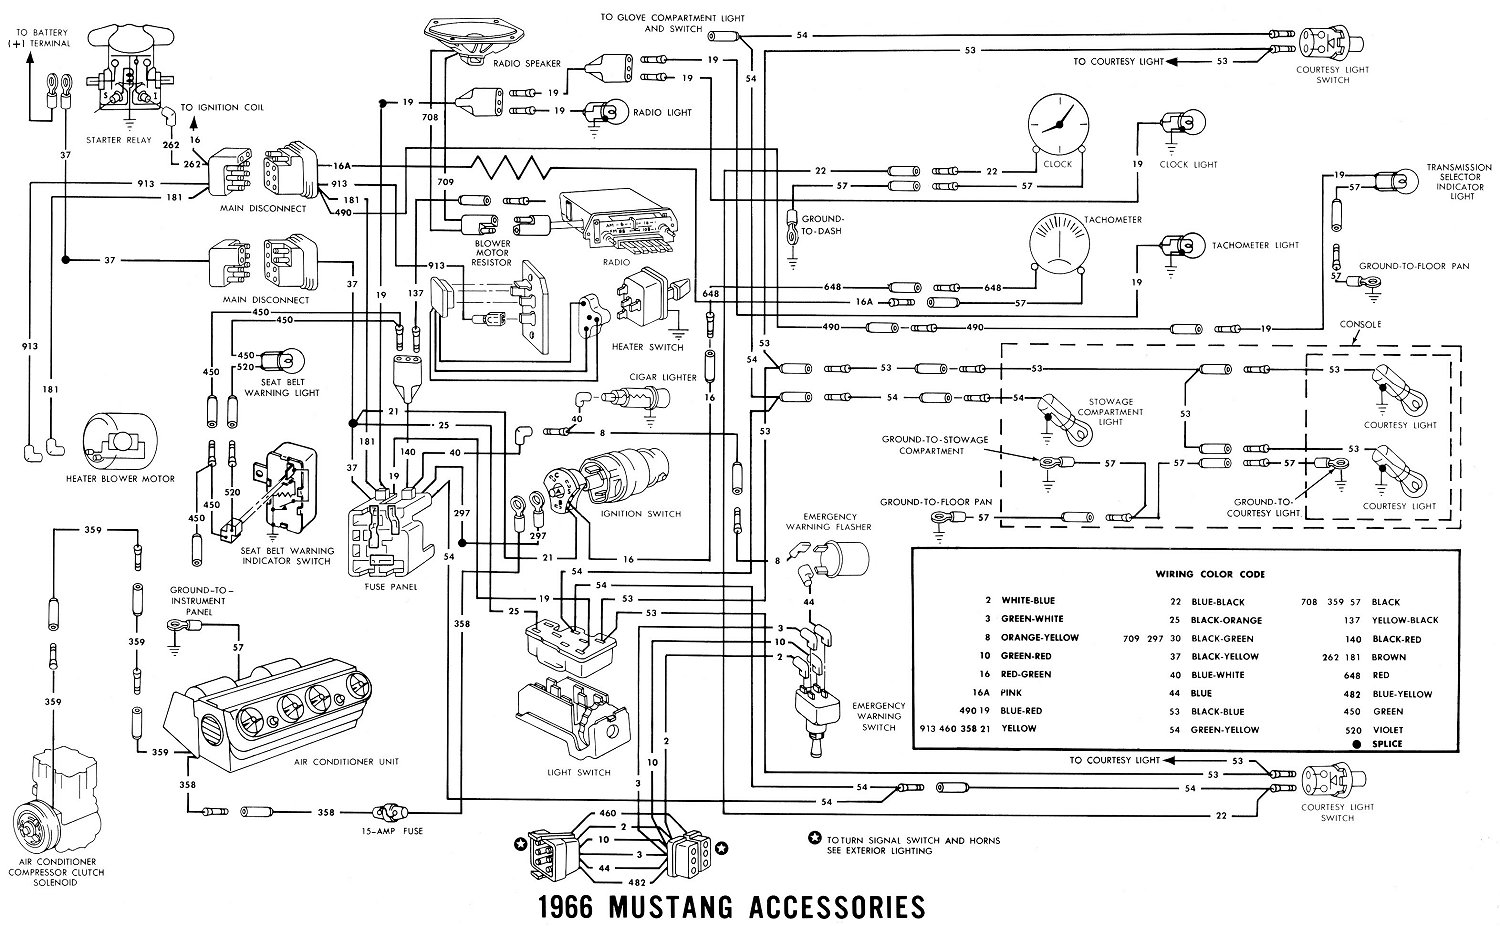 2001 Mustang Wiring Diagram from 1.bp.blogspot.com